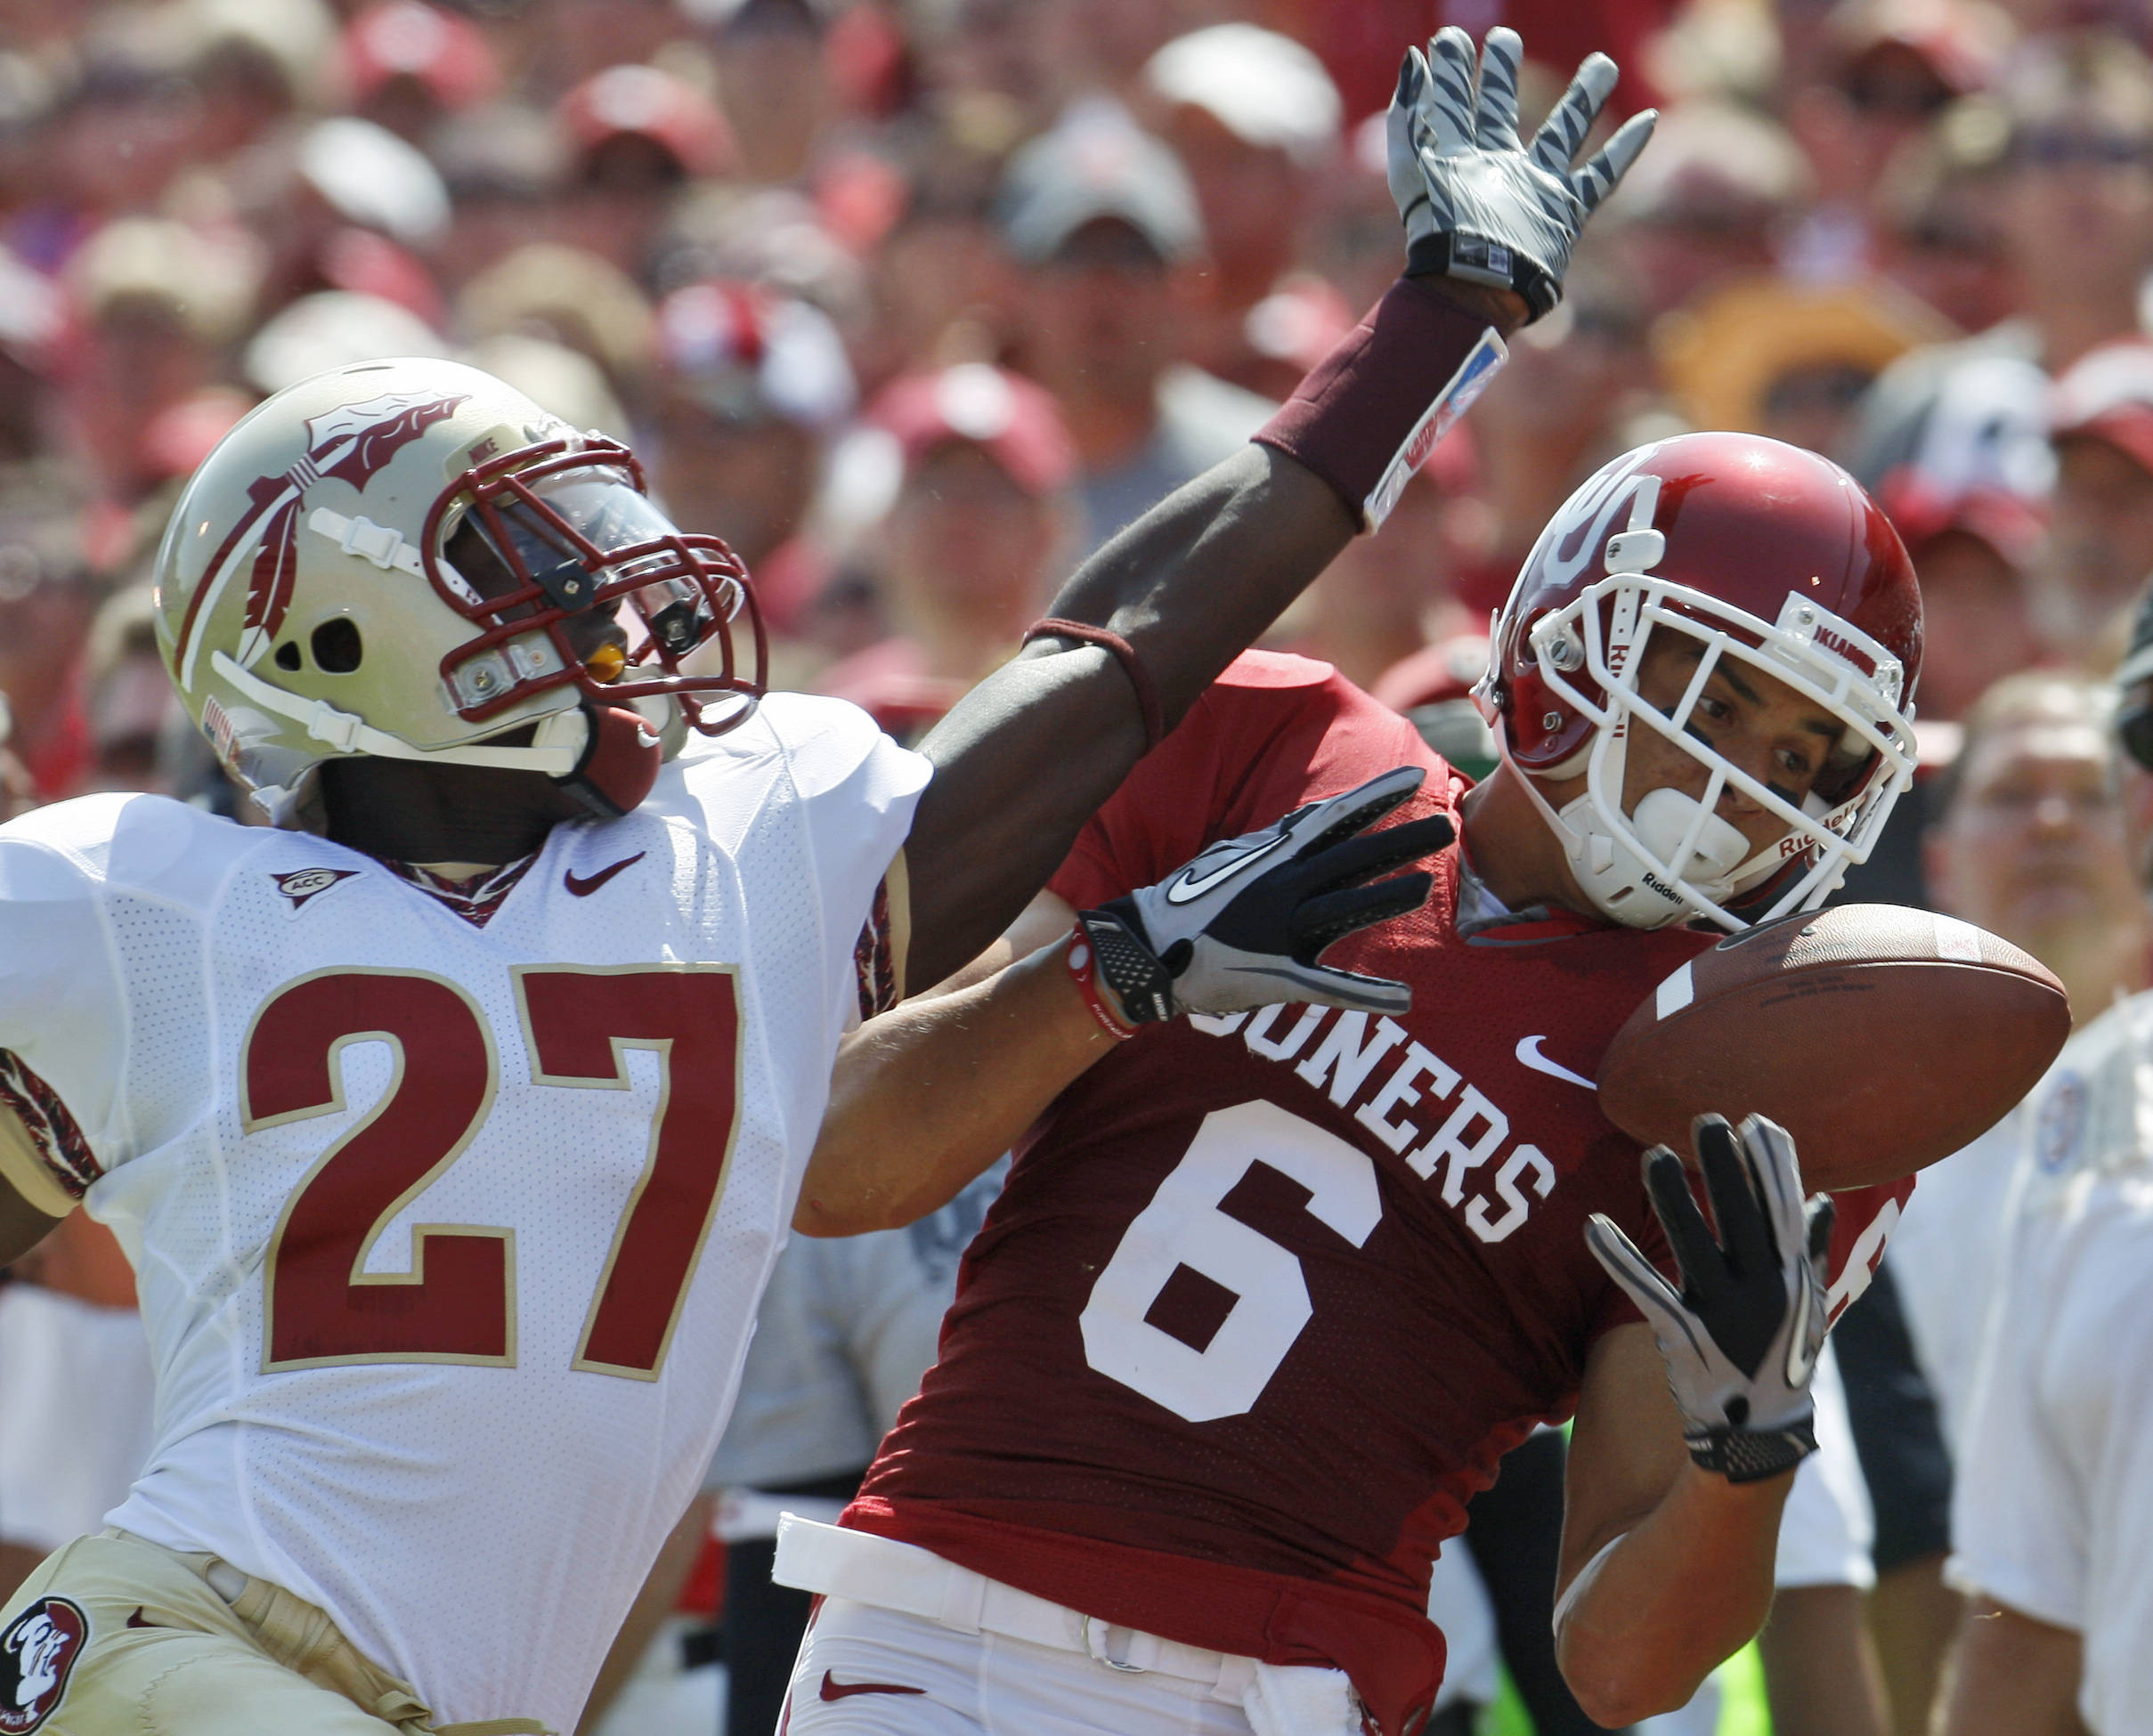 Florida State cornerback Xavier Rhodes, left, breaks up a pass intended for Oklahoma wide receiver Cameron Kenney in the first quarter of an NCAA college football game in Norman, Okla., Saturday, Sept. 11, 2010. (AP Photo/Sue Ogrocki)